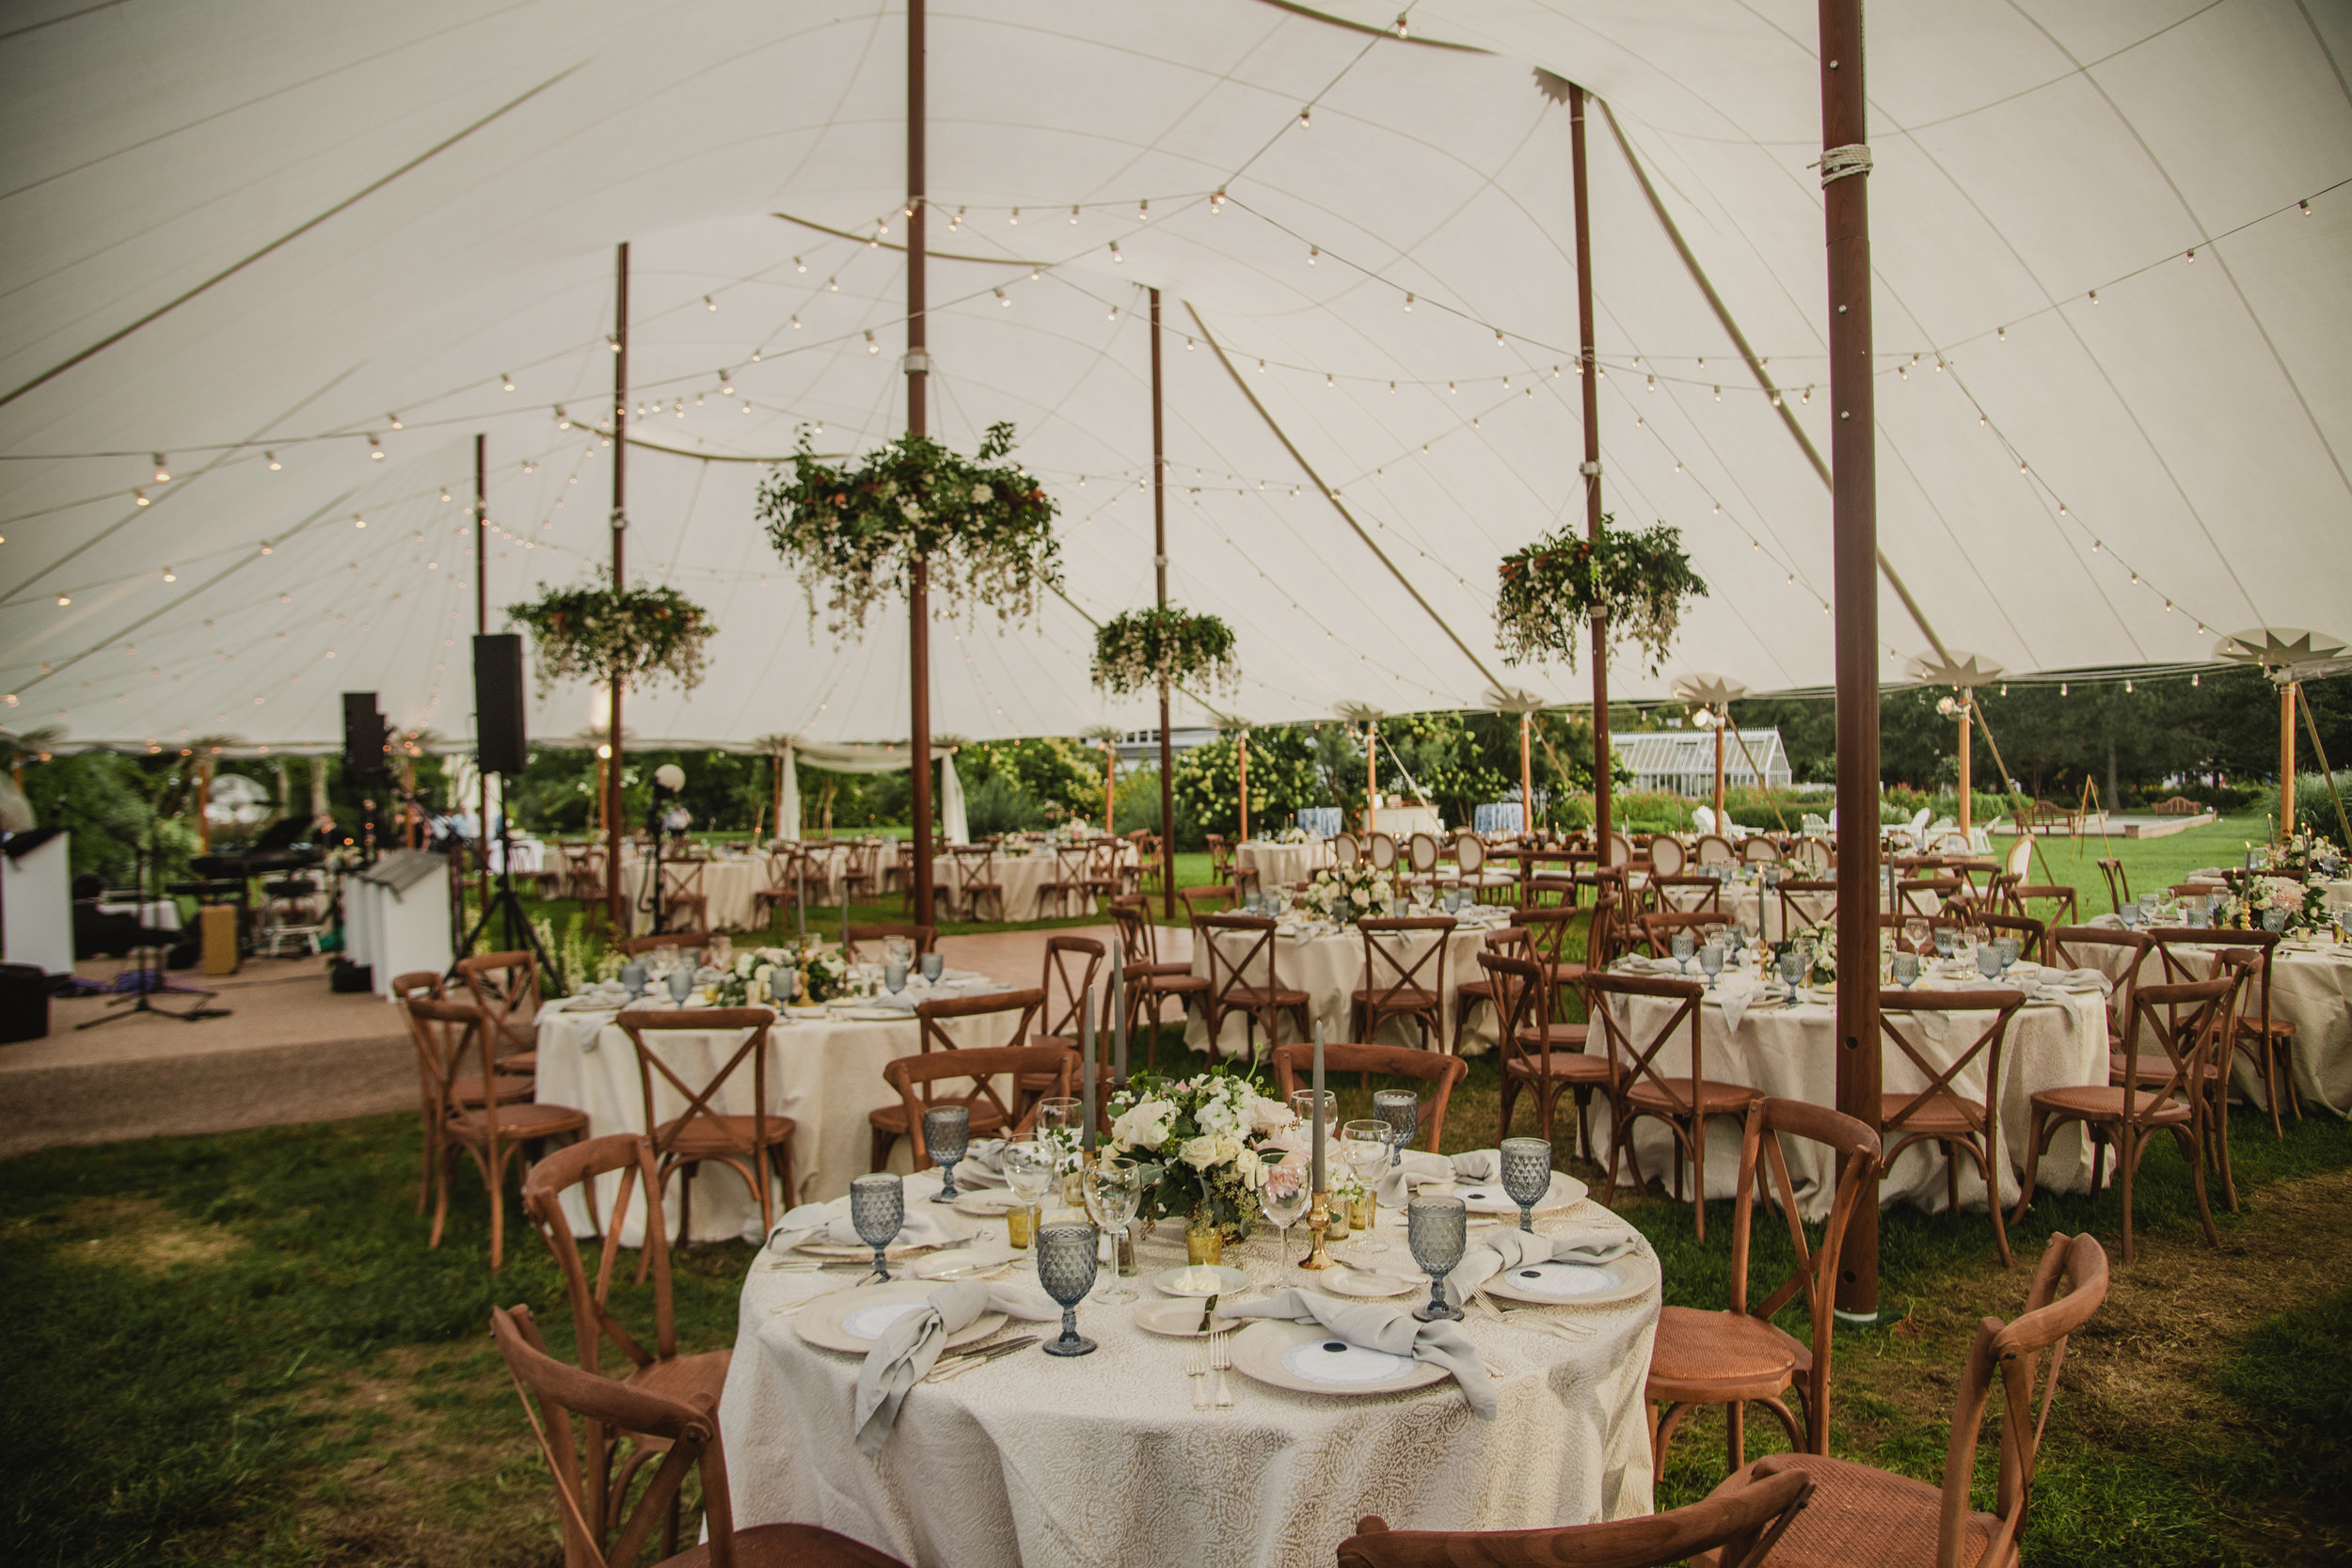 Maryland Wedding, Tent Wedding, Entrance Decor, Greenery Wedding, White Flowers, NJ Florist, Inn at Perry Cabin, Maryland Bride, Tyler Boye Photography